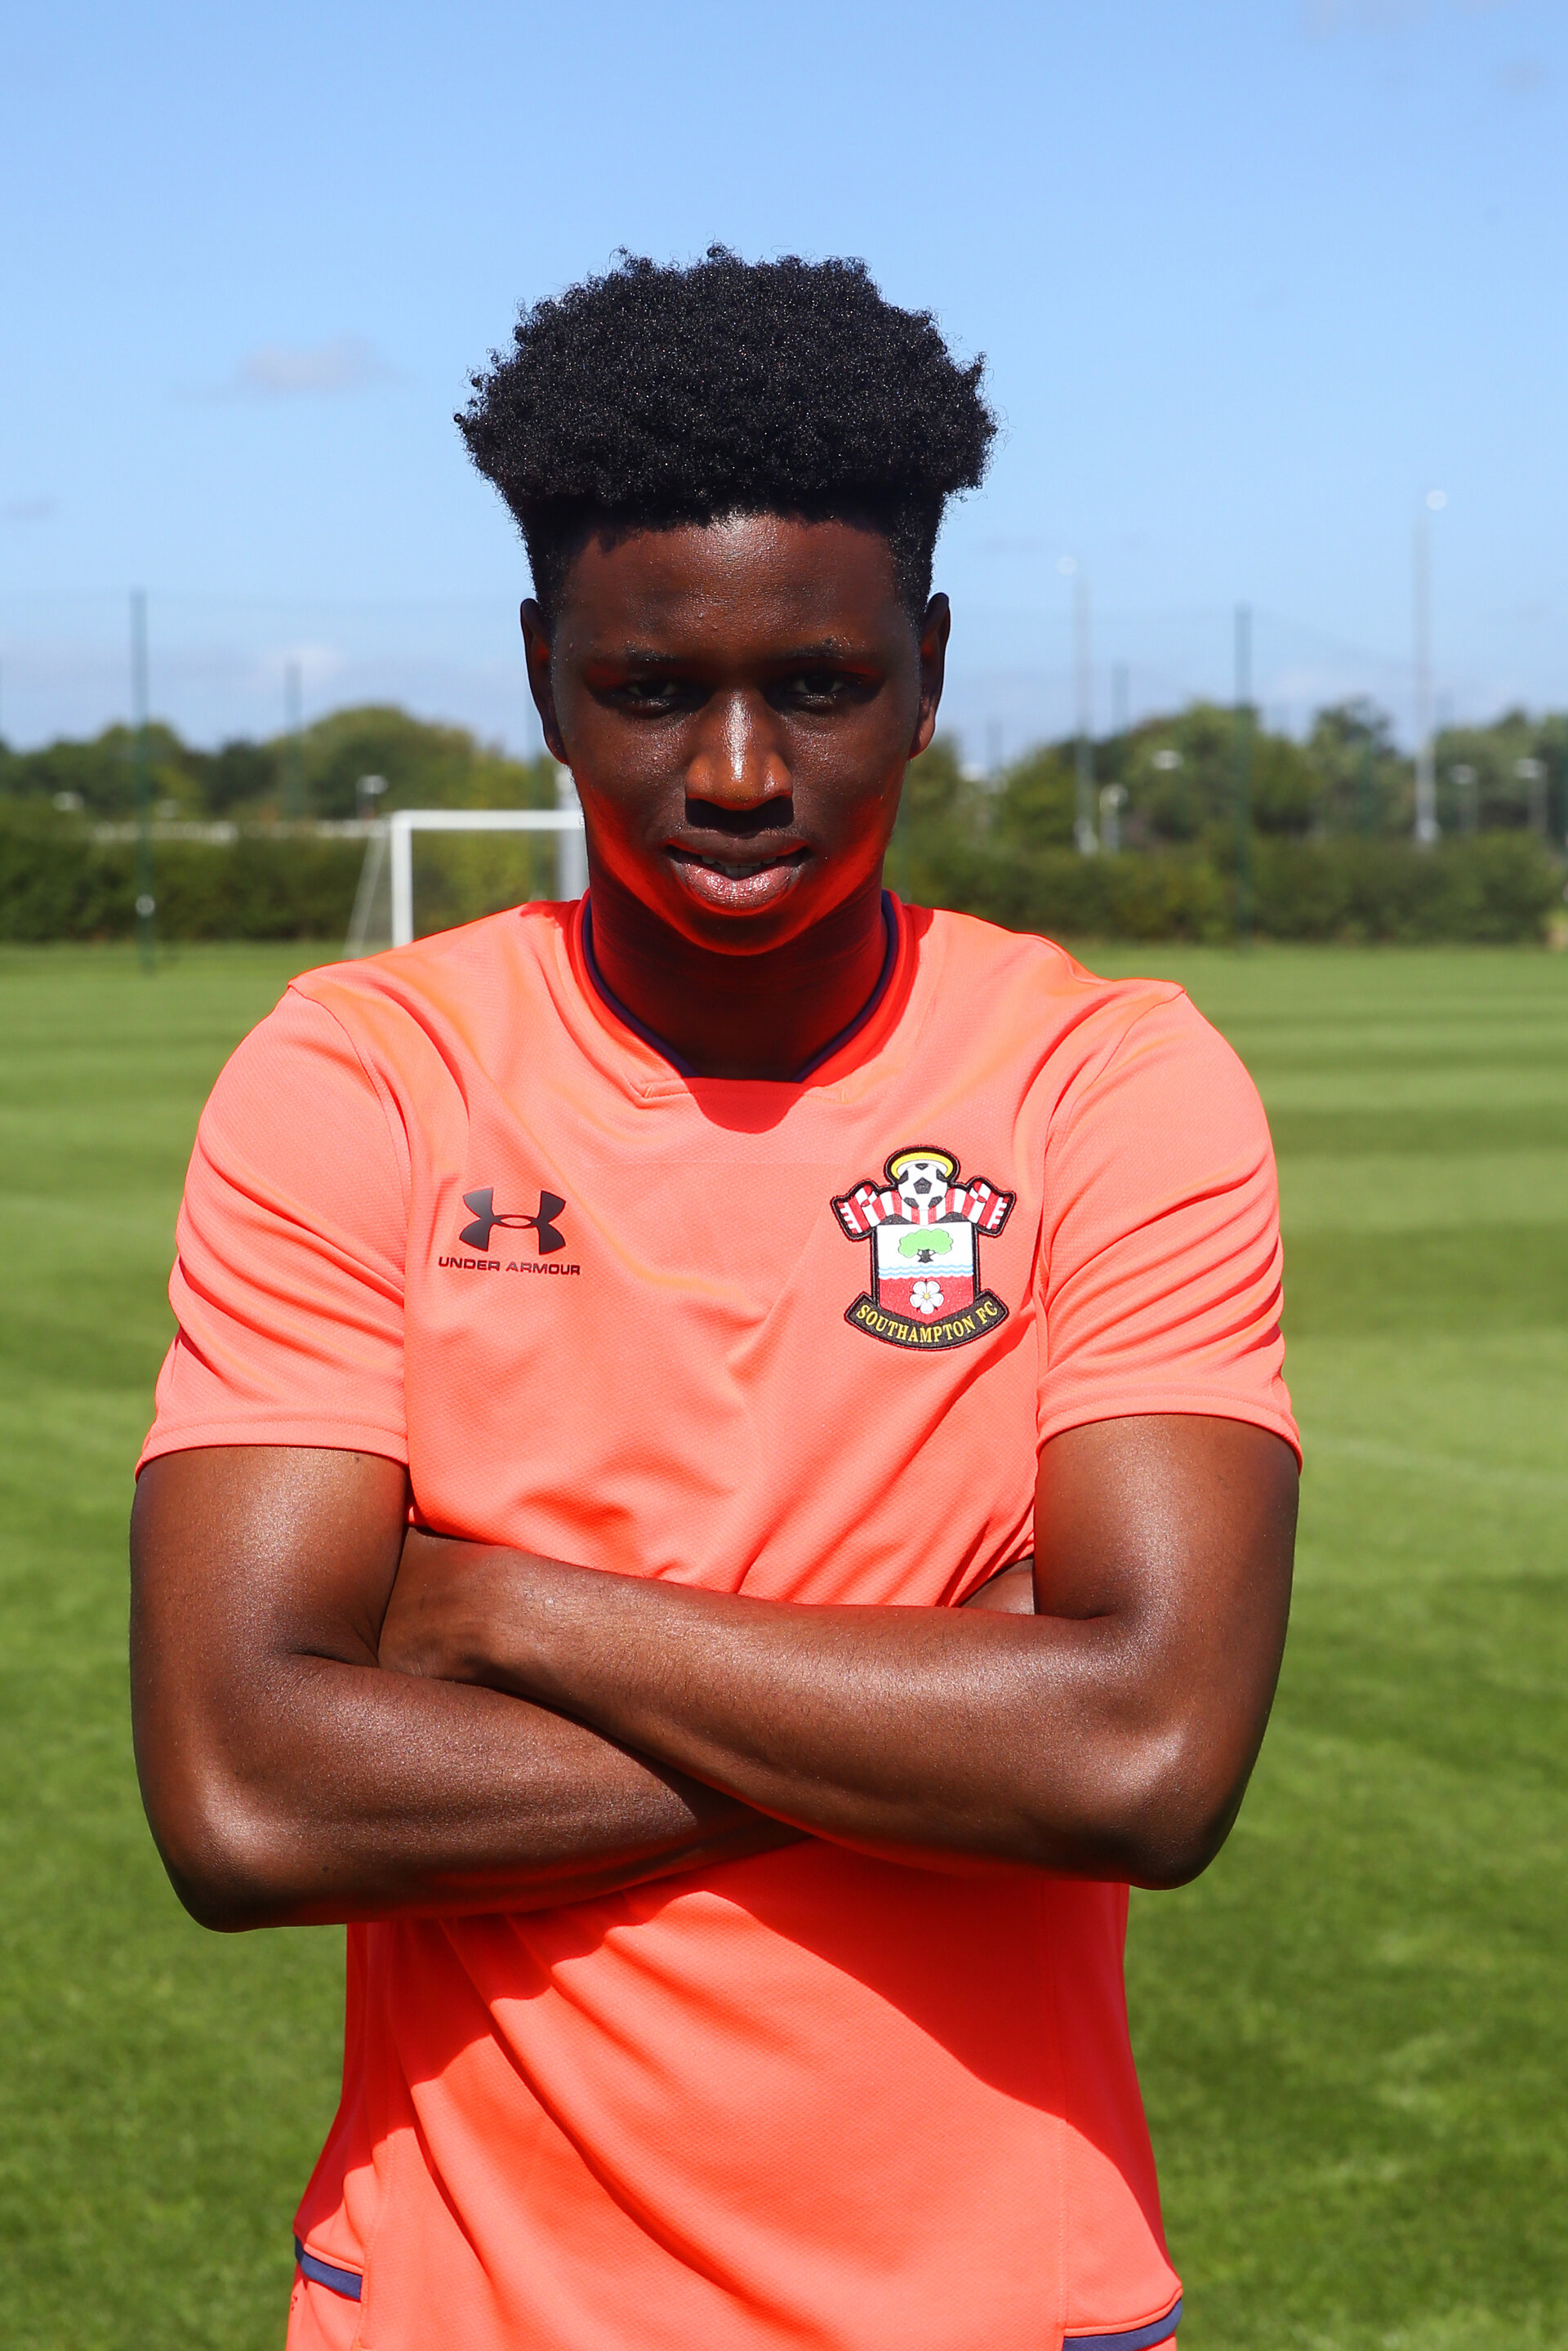 SOUTHAMPTON, ENGLAND - August 20: David Agbontahoma who signed his first professional contract at Staplewood Training ground on August 20, 2020 in Southampton, England. (Photo by Isabelle Field/Southampton FC via Getty Images)